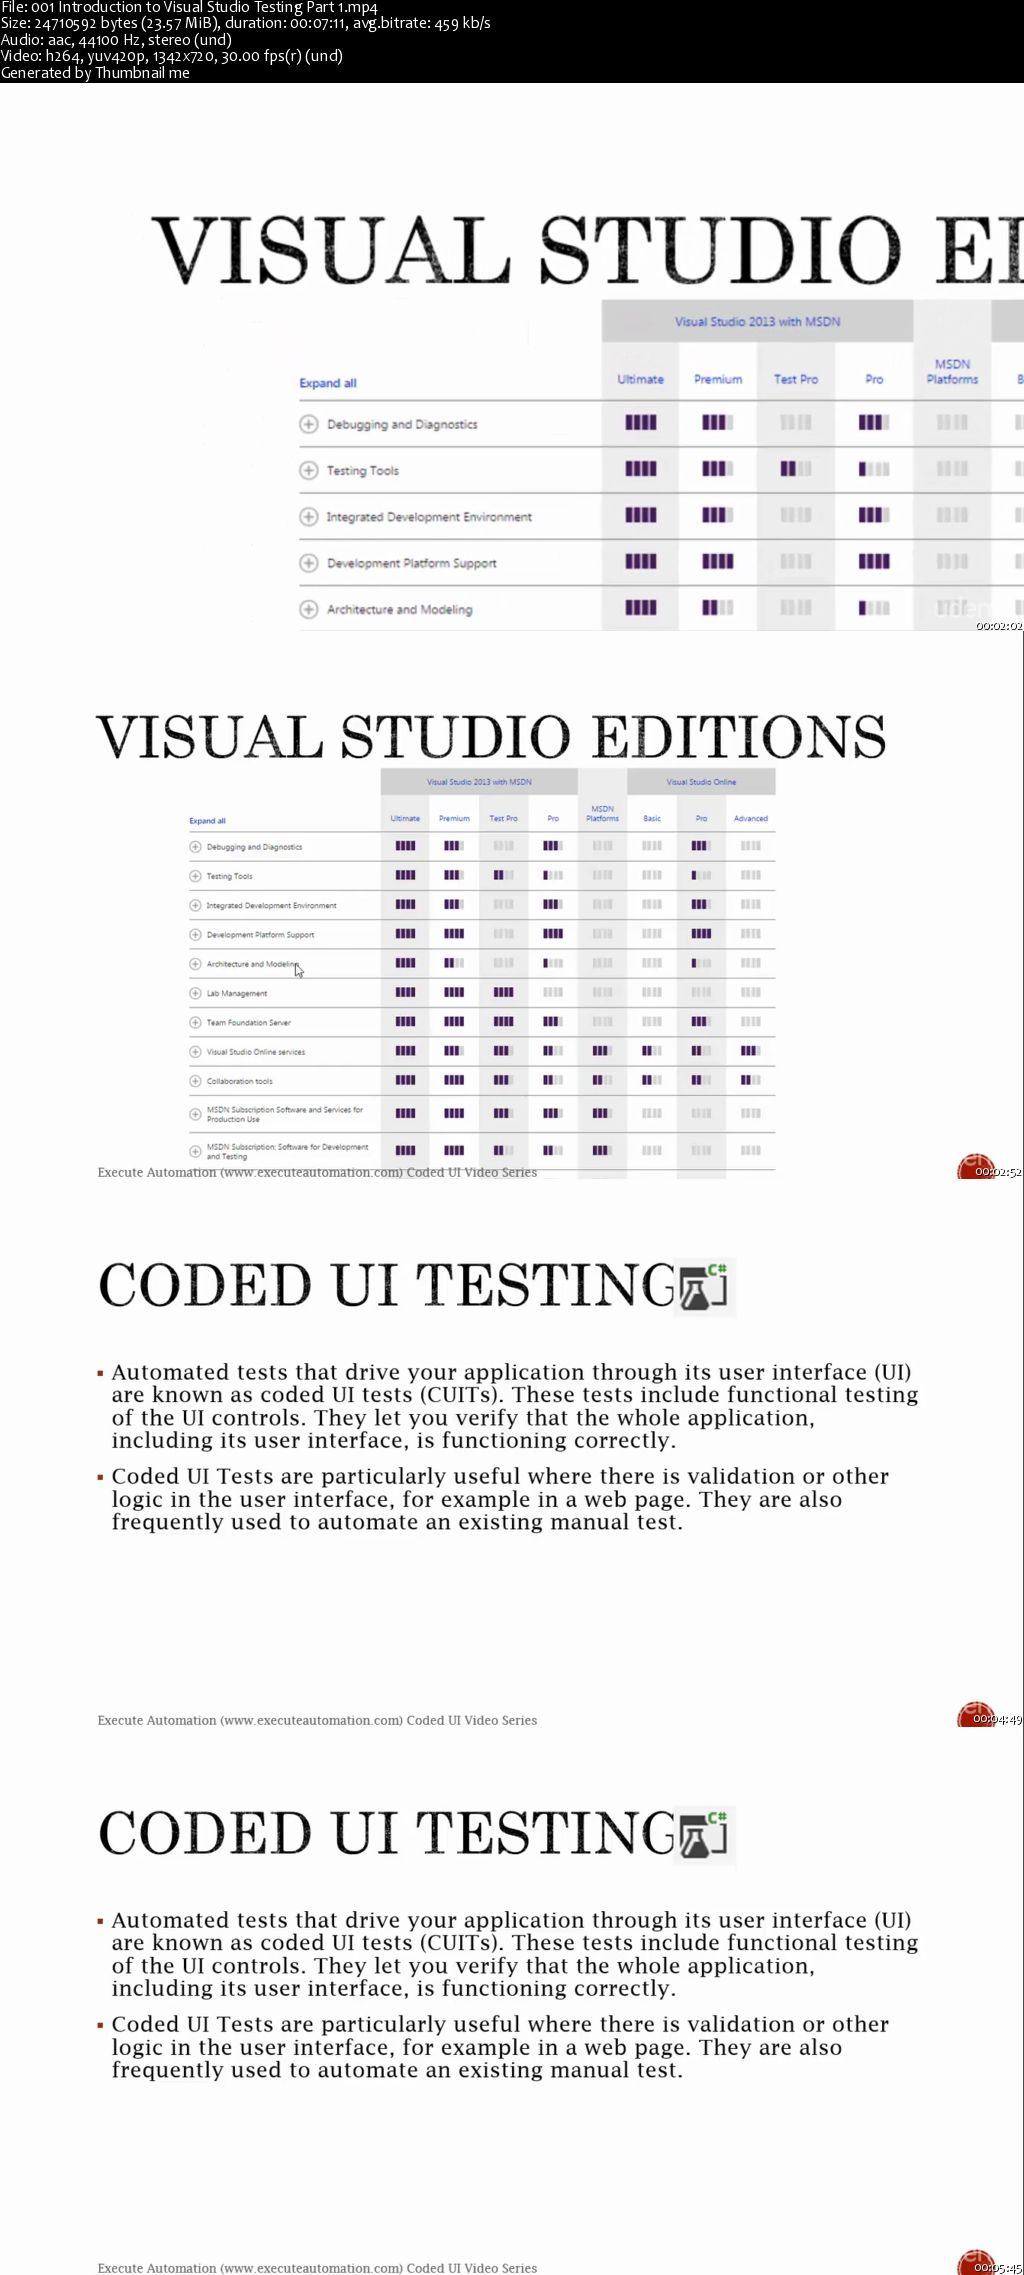 Coded UI Testing with Visual Studio 2013